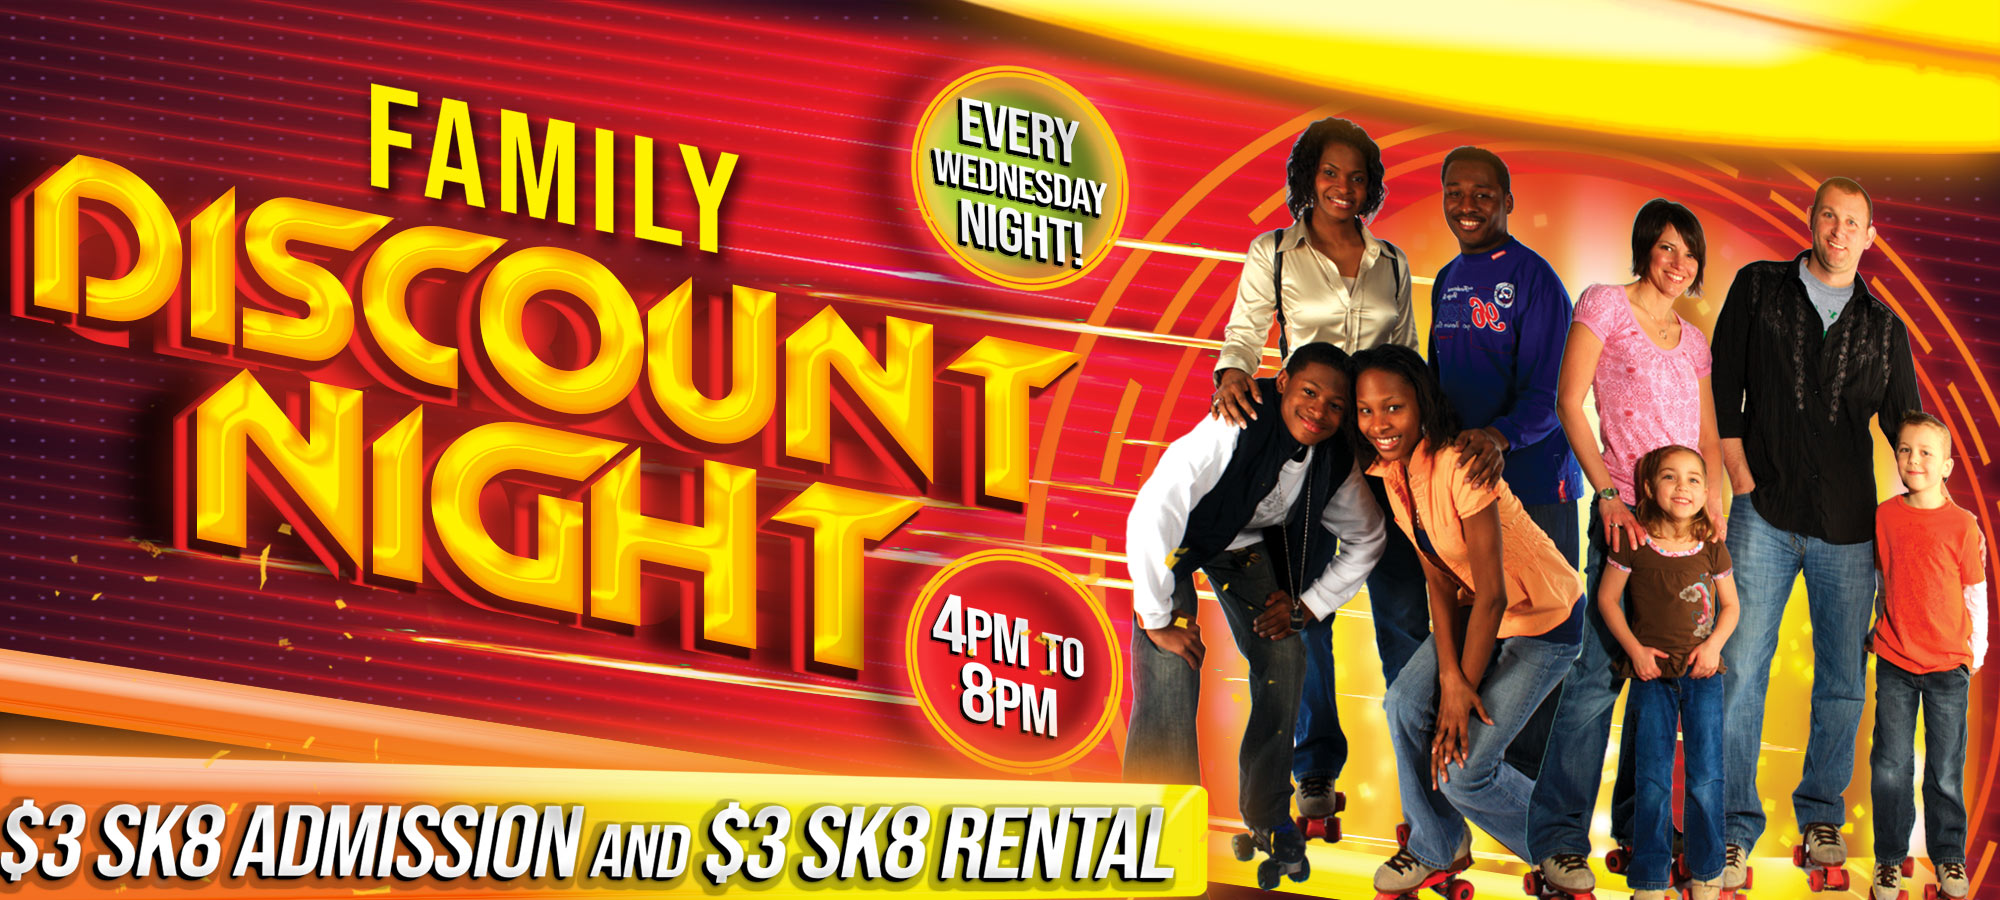 Family-Discount-Night-2021